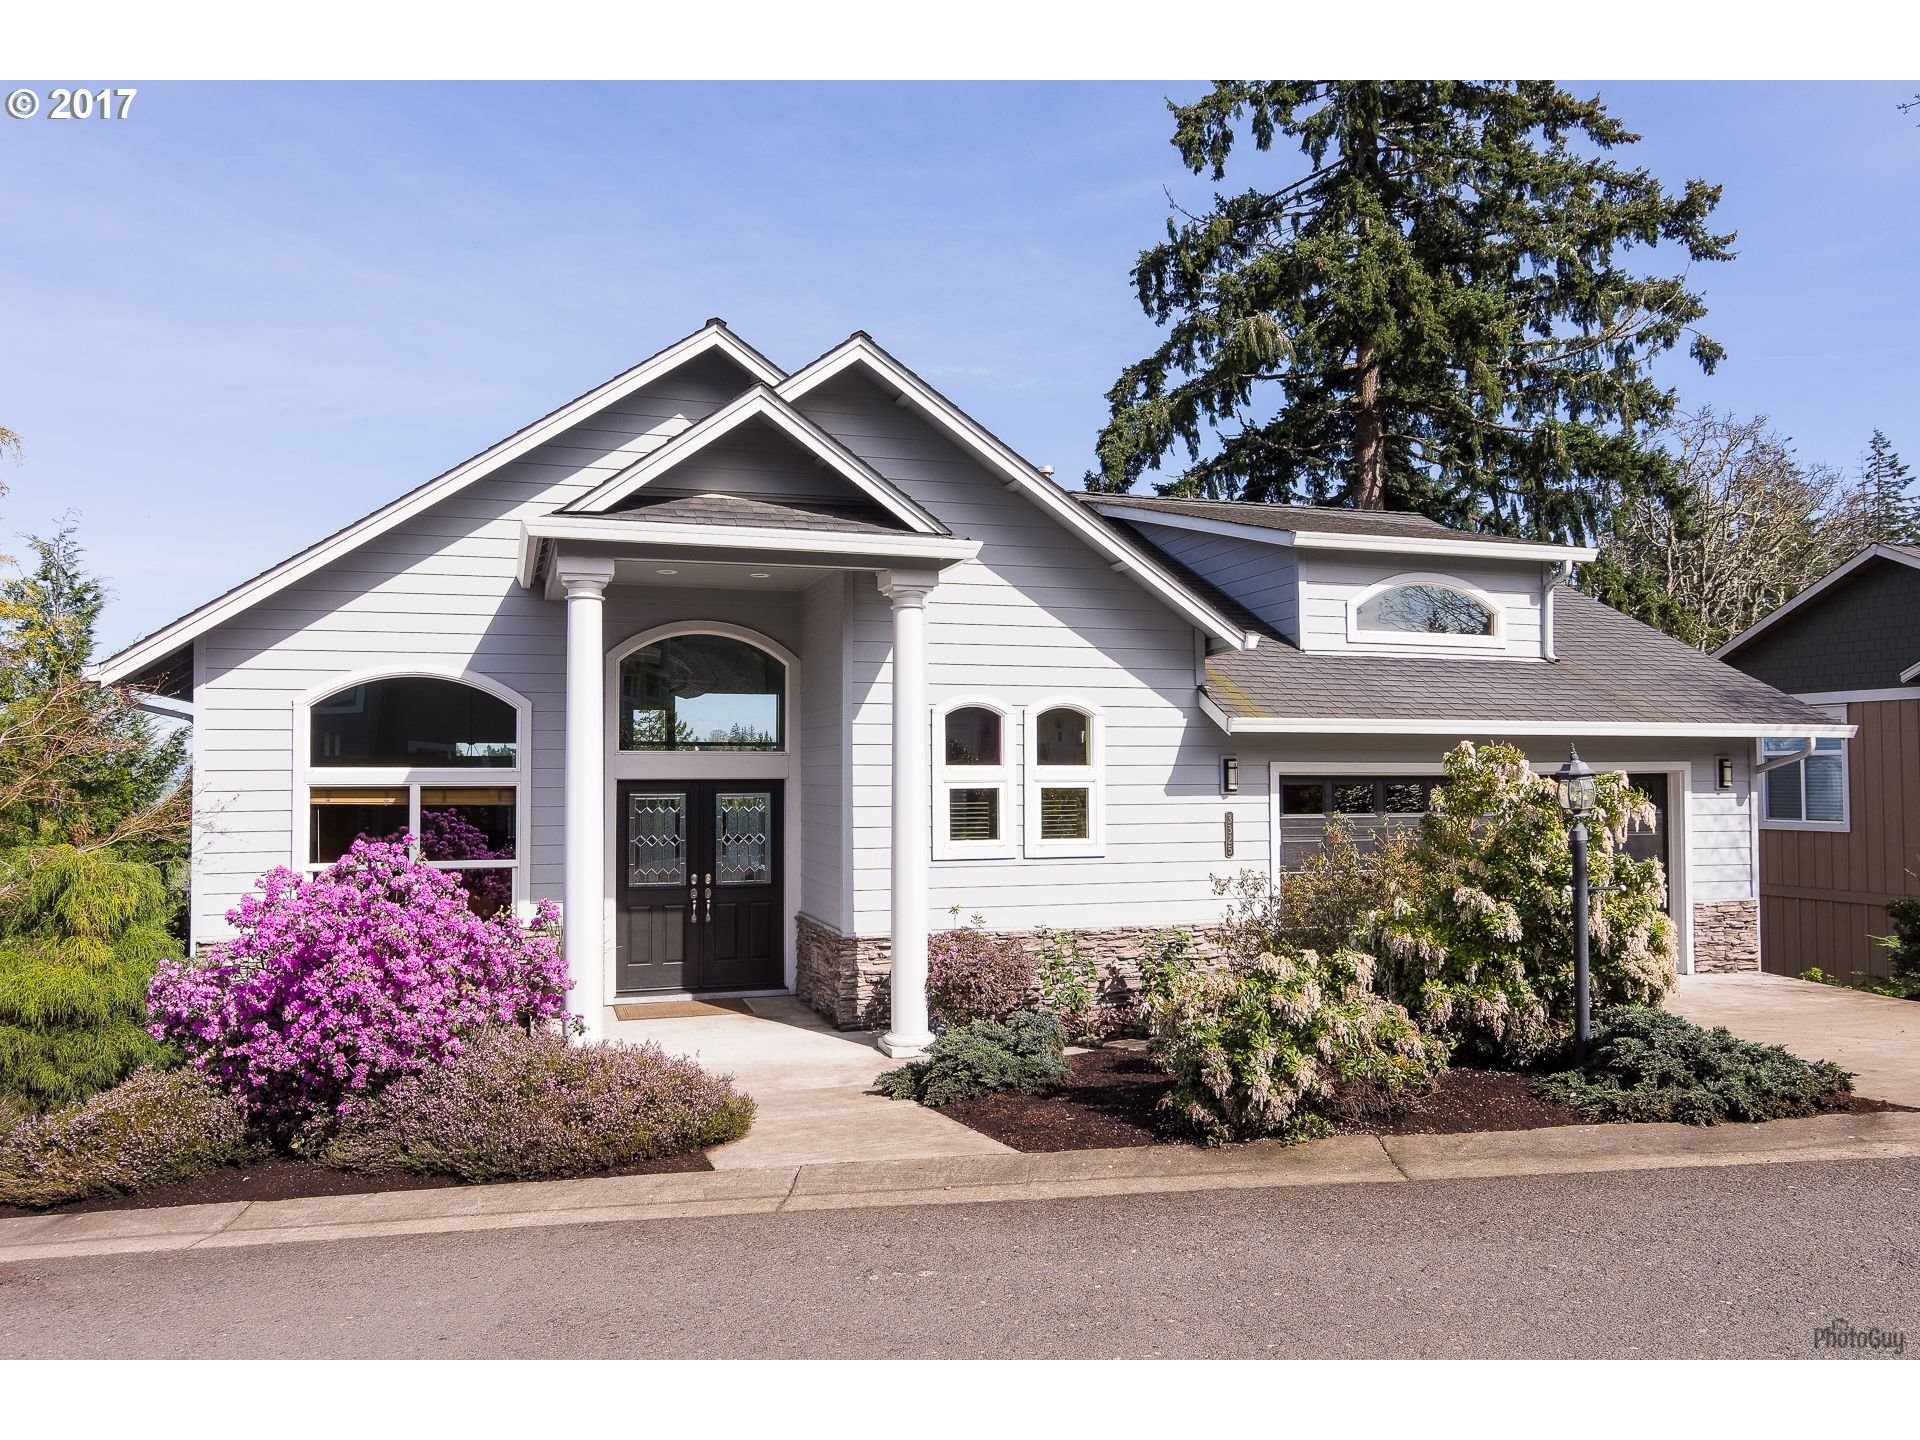 3325 BENTLEY AVE, Eugene, OR 97405